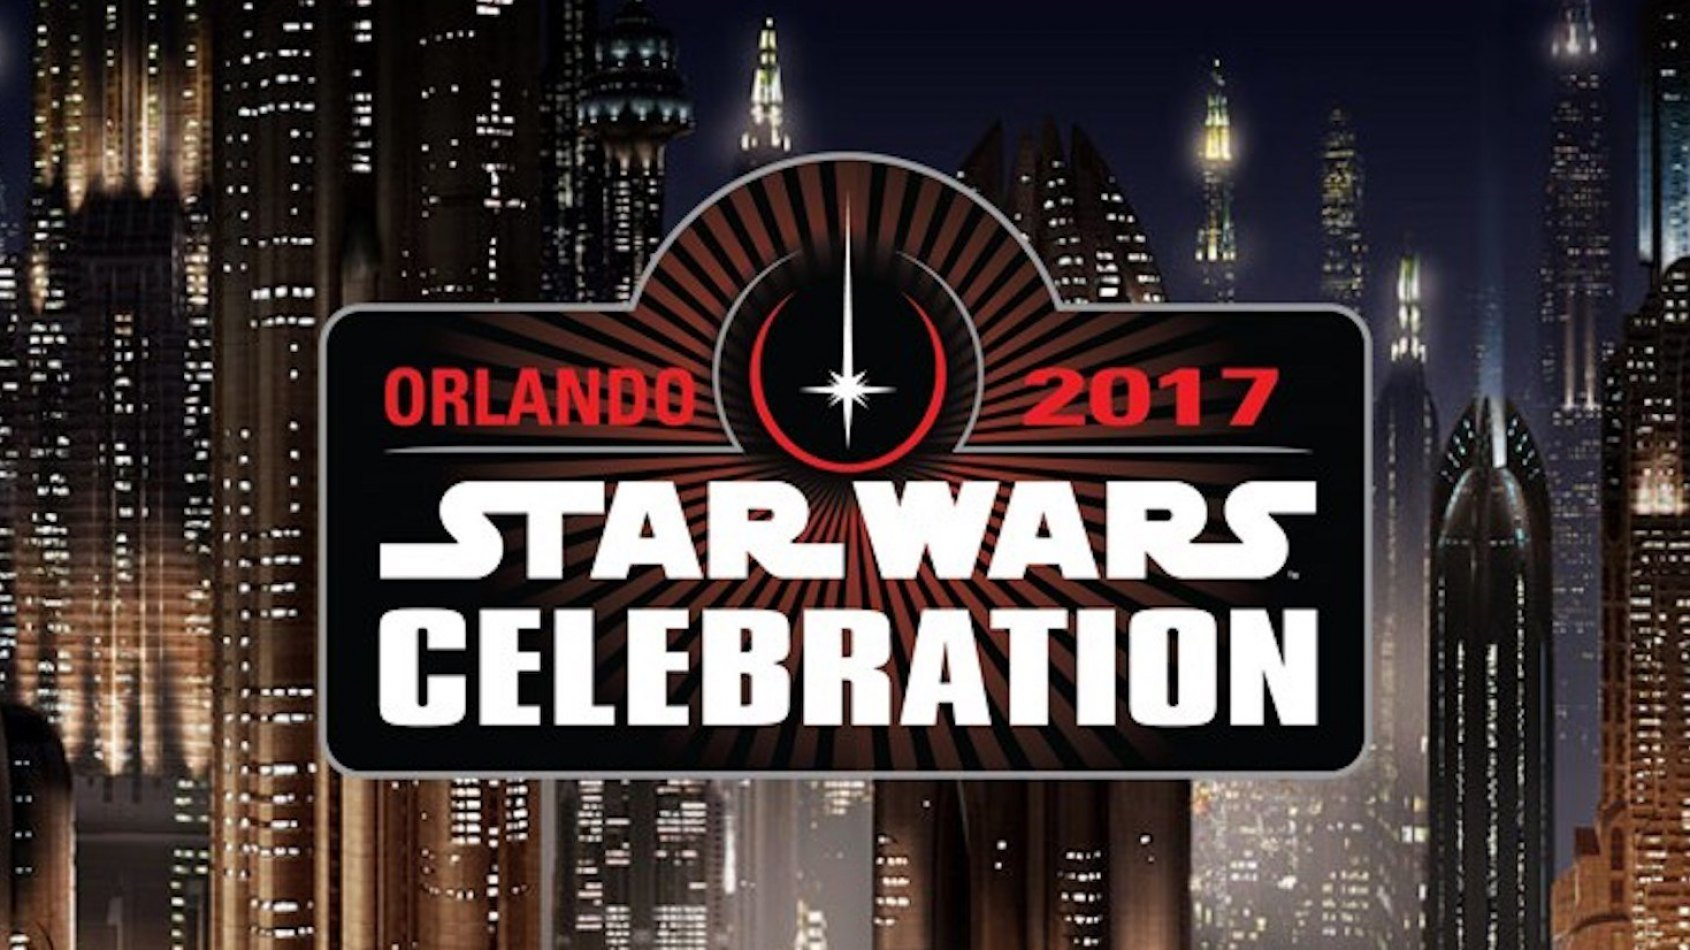 Le programme Pin Trading de la Star Wars Celebration dévoilé!